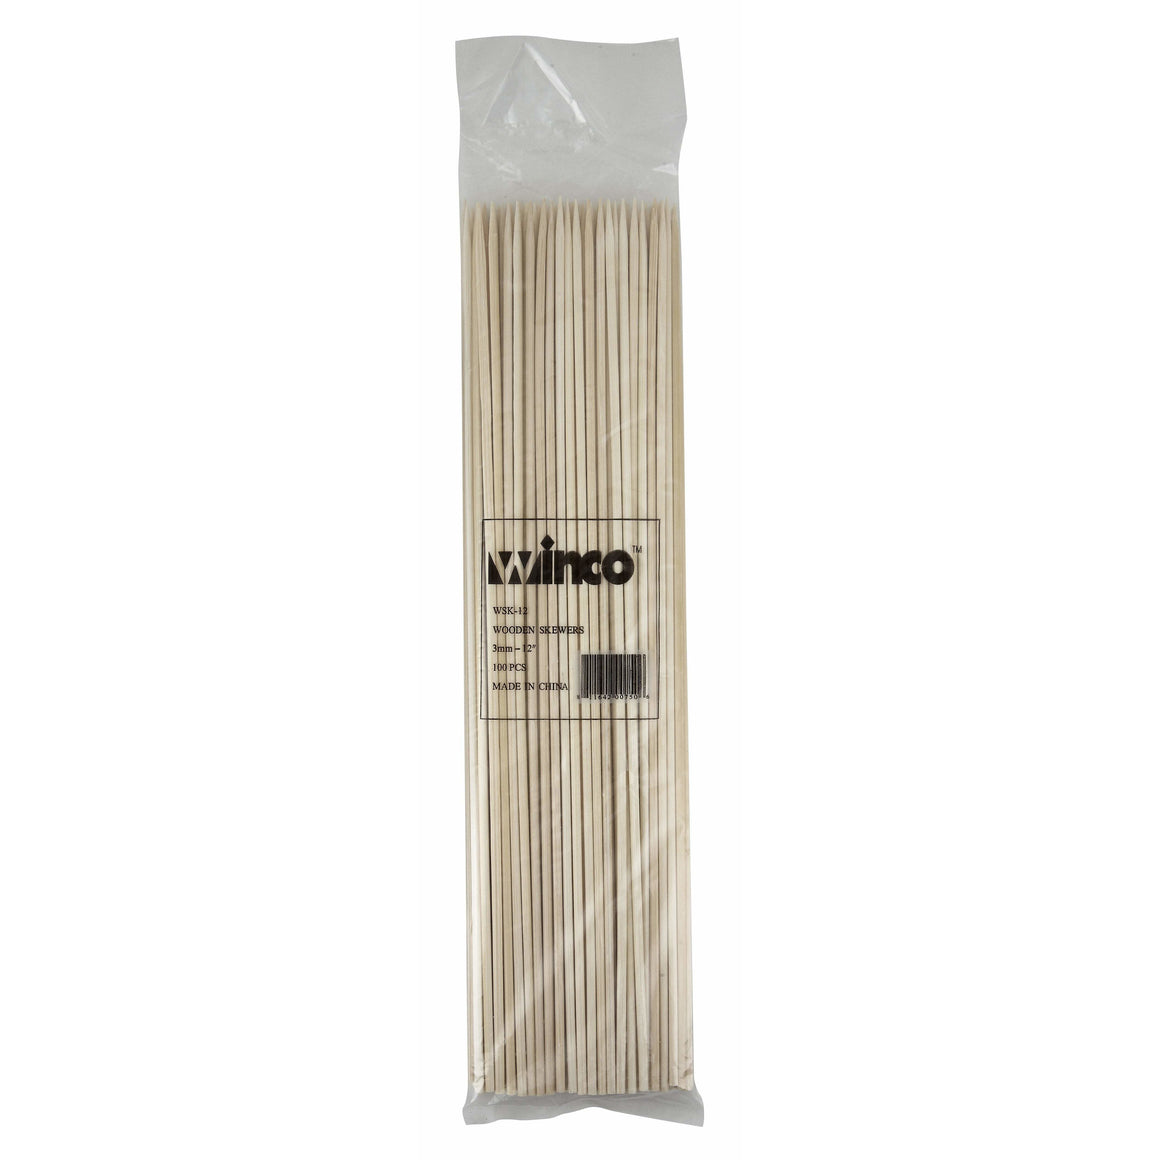 "Winco - WSK-12 - 12"" Bamboo Skewers, 100/bag - Kitchen Utensils"